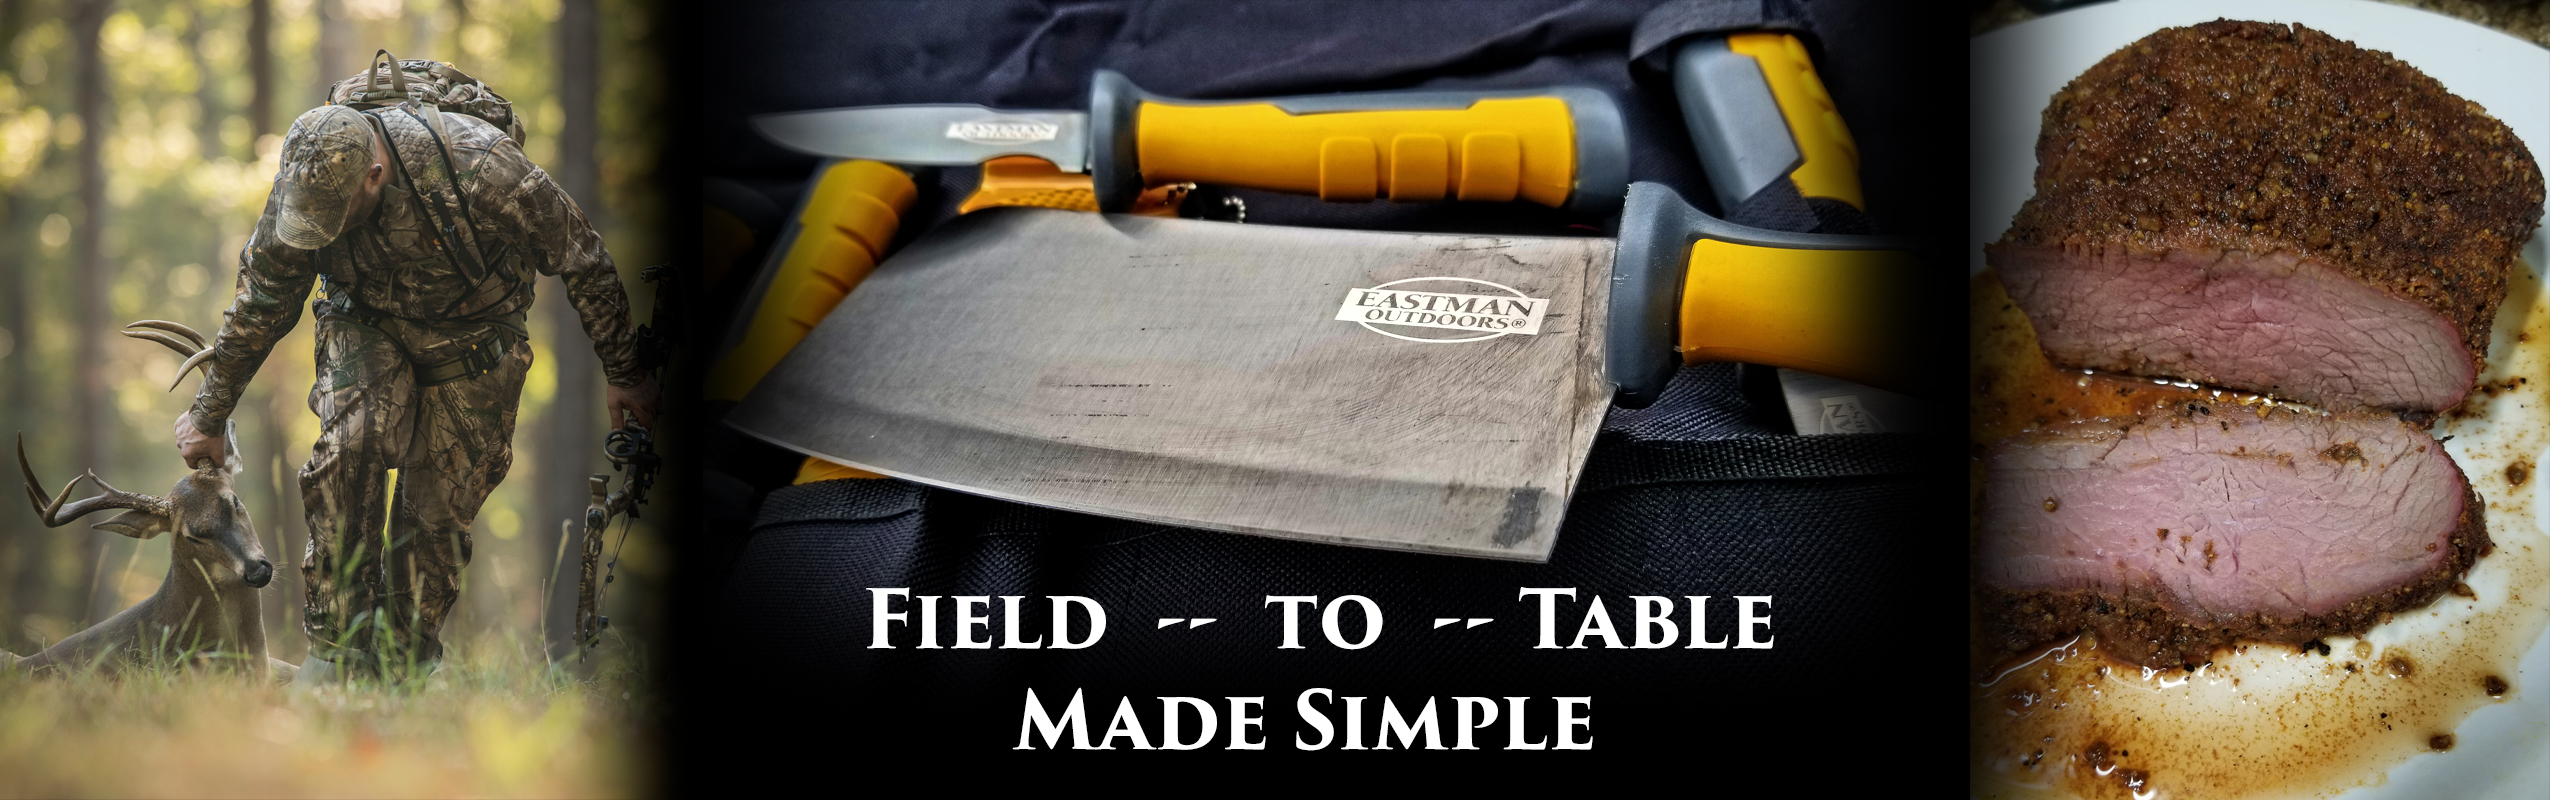 Field to Table Made Simple